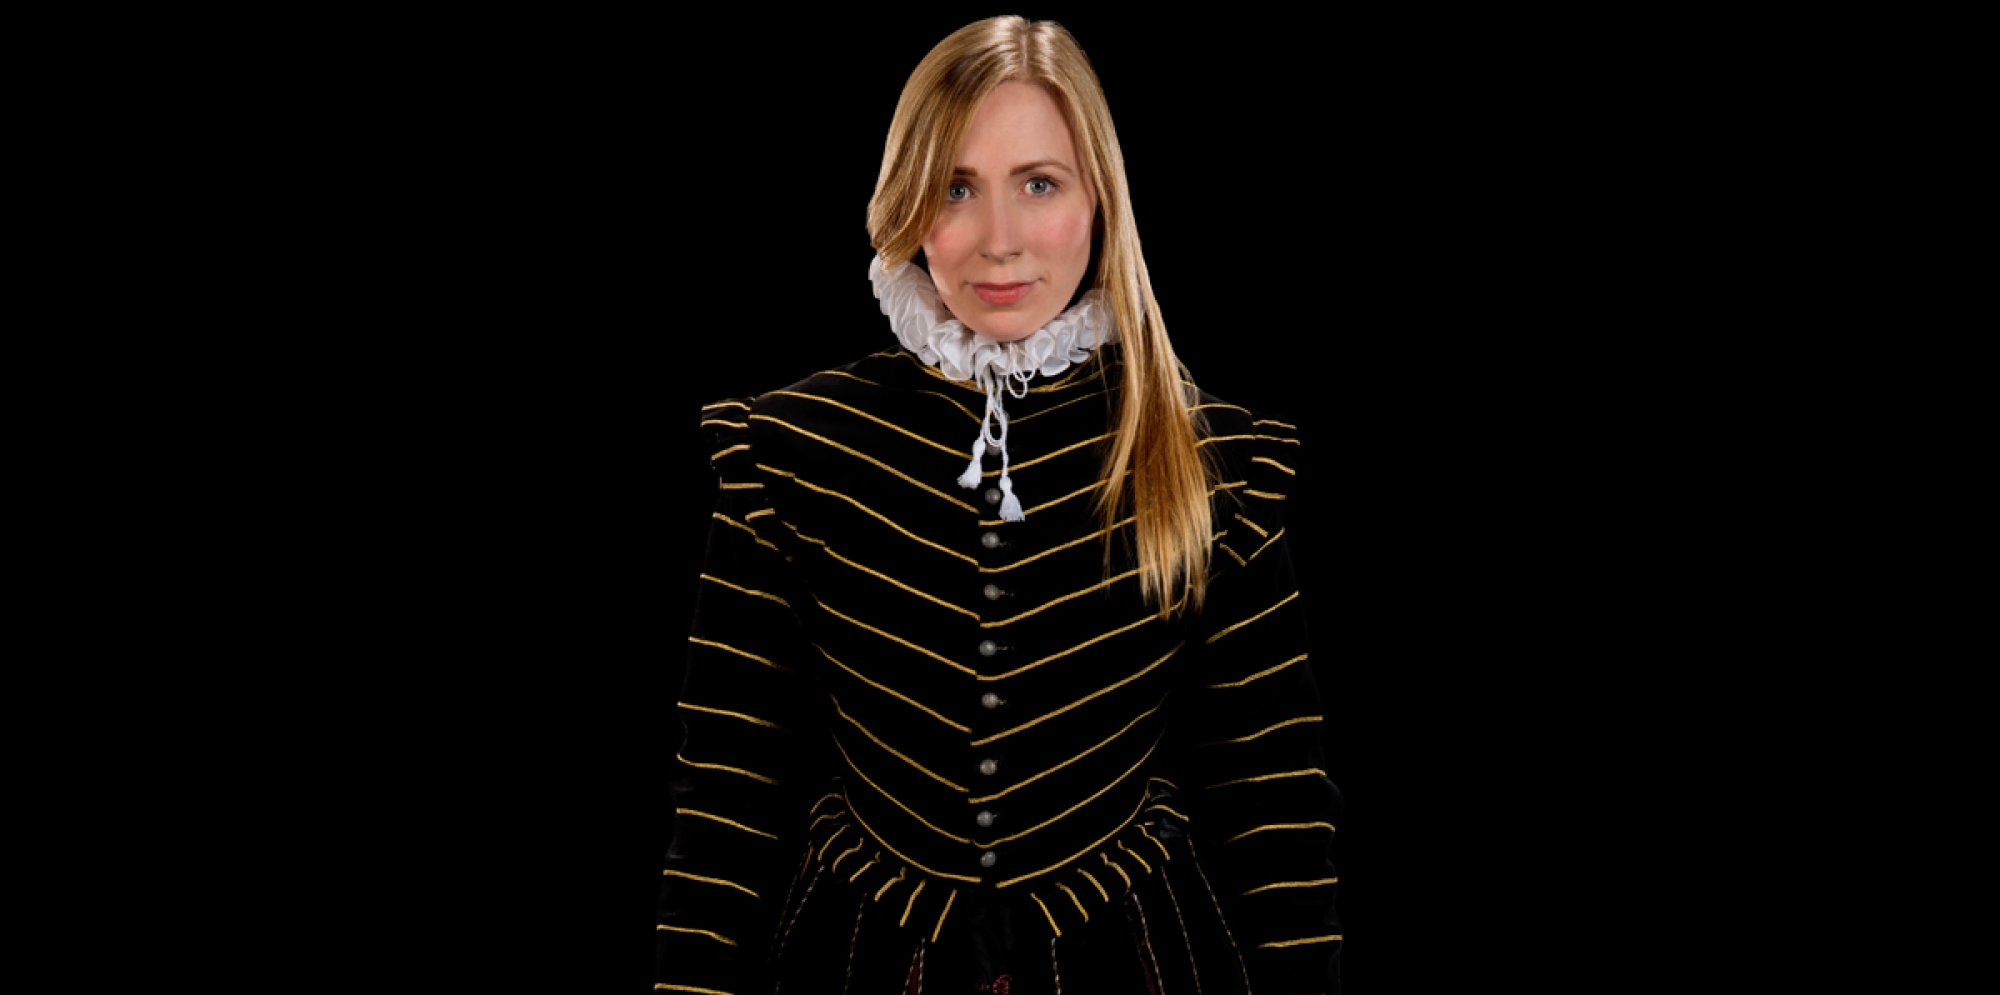 Rebecca Vaughan looking confident at the viewer, dressed in a black-golden Tudor male jacket